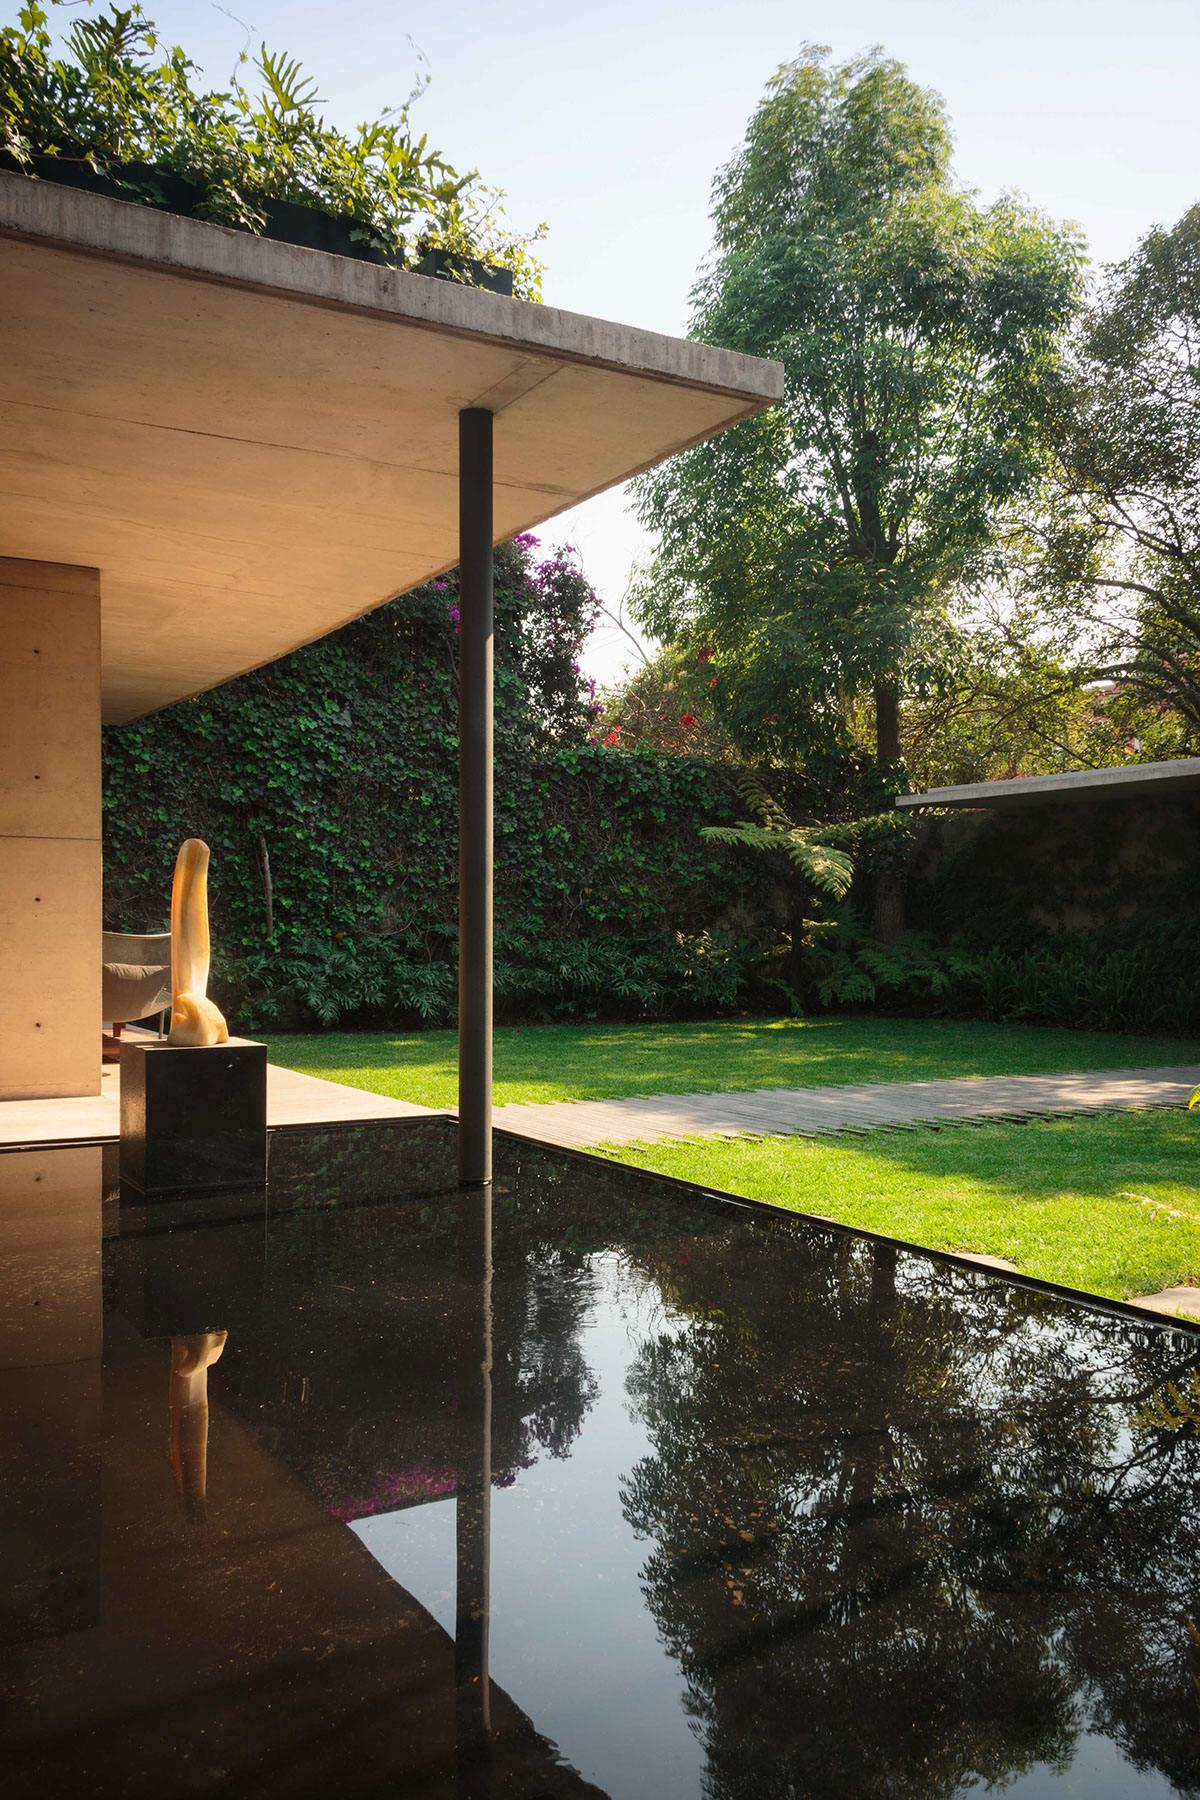 Pool With Black Walls And Floor - An atmospheric approach to modernist architecture in mexico